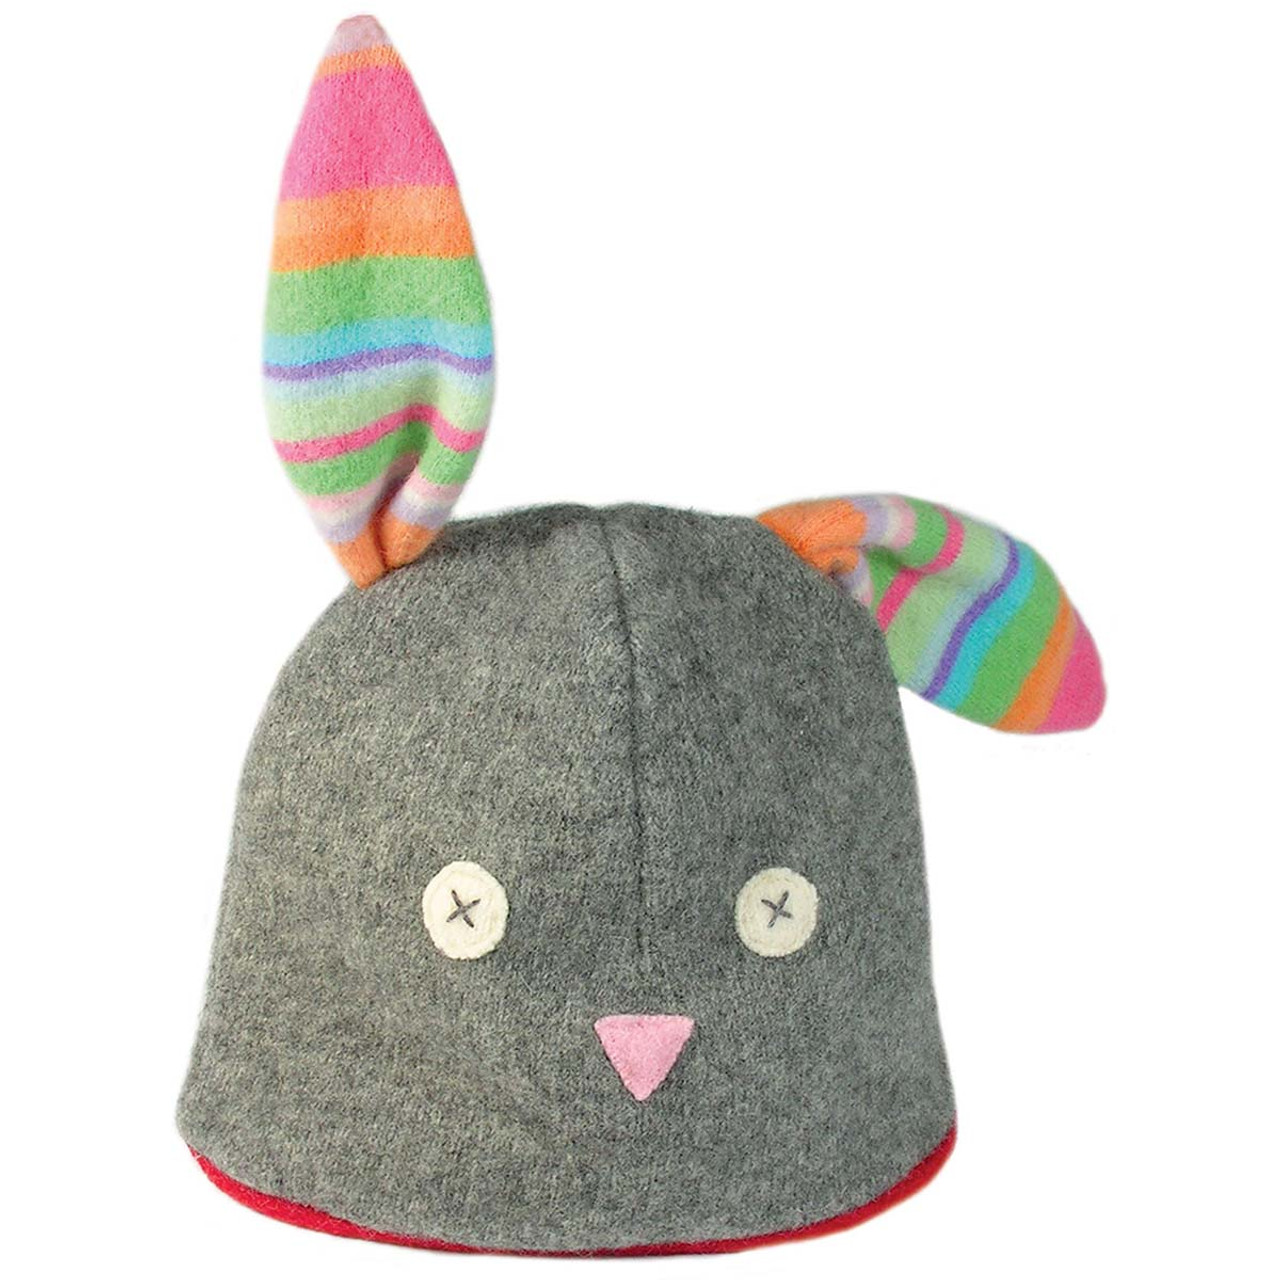 Toddler Winter Hat-Eco Wool - Bunny - Solne Eco Department Store 5da7c388222